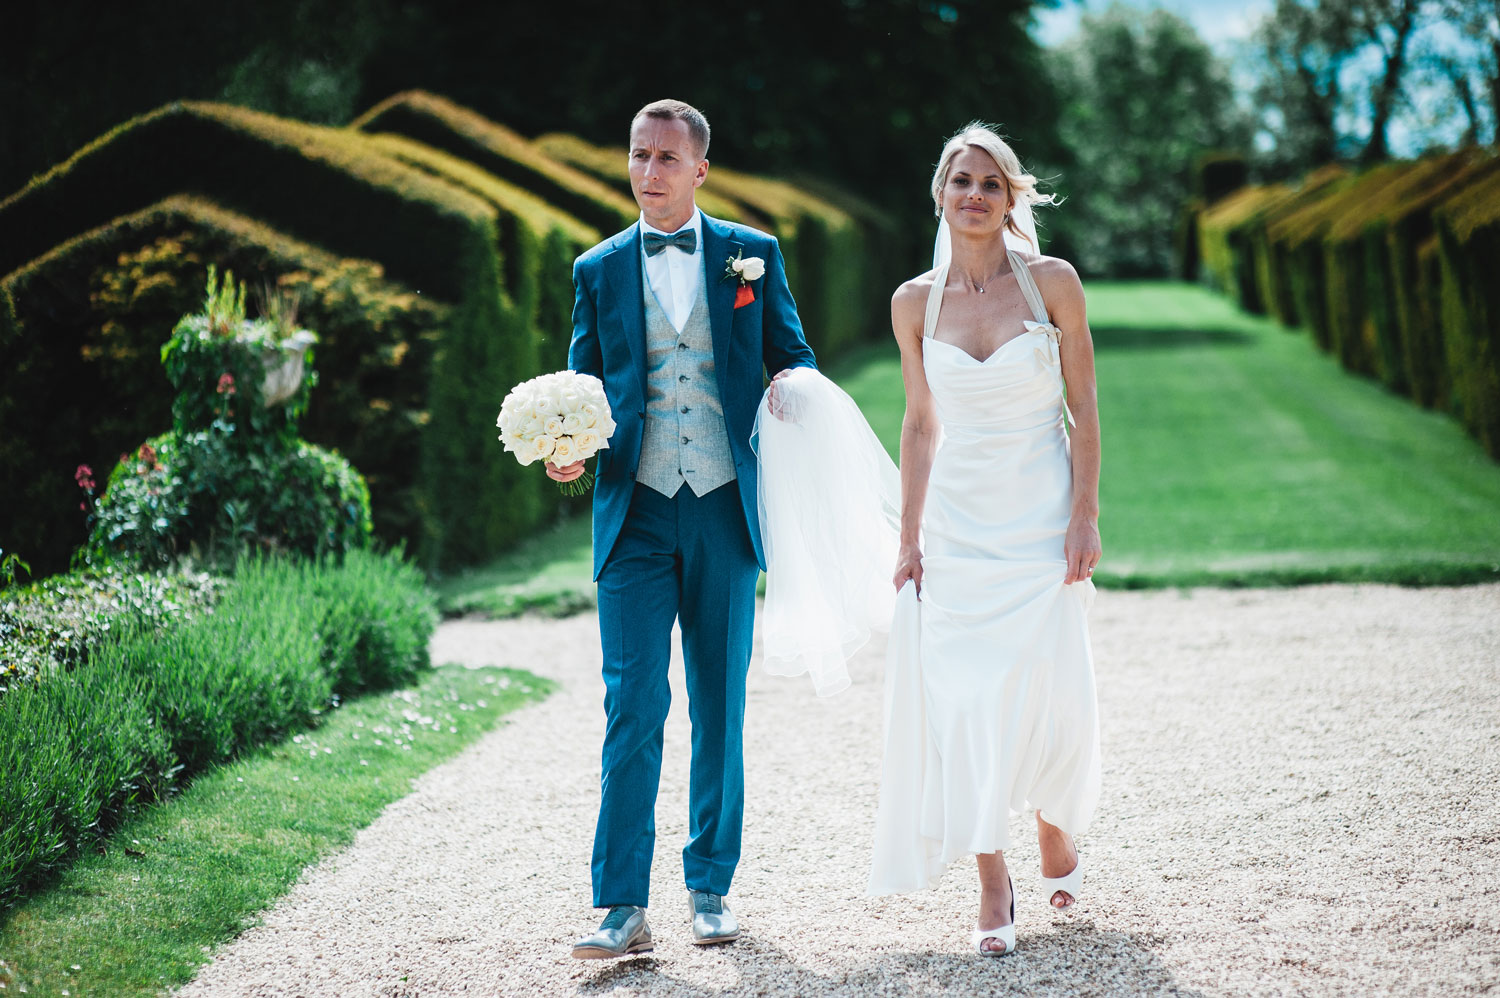 Esther&Louis at THE MANOR WESTON, OXFORDSHIRE.